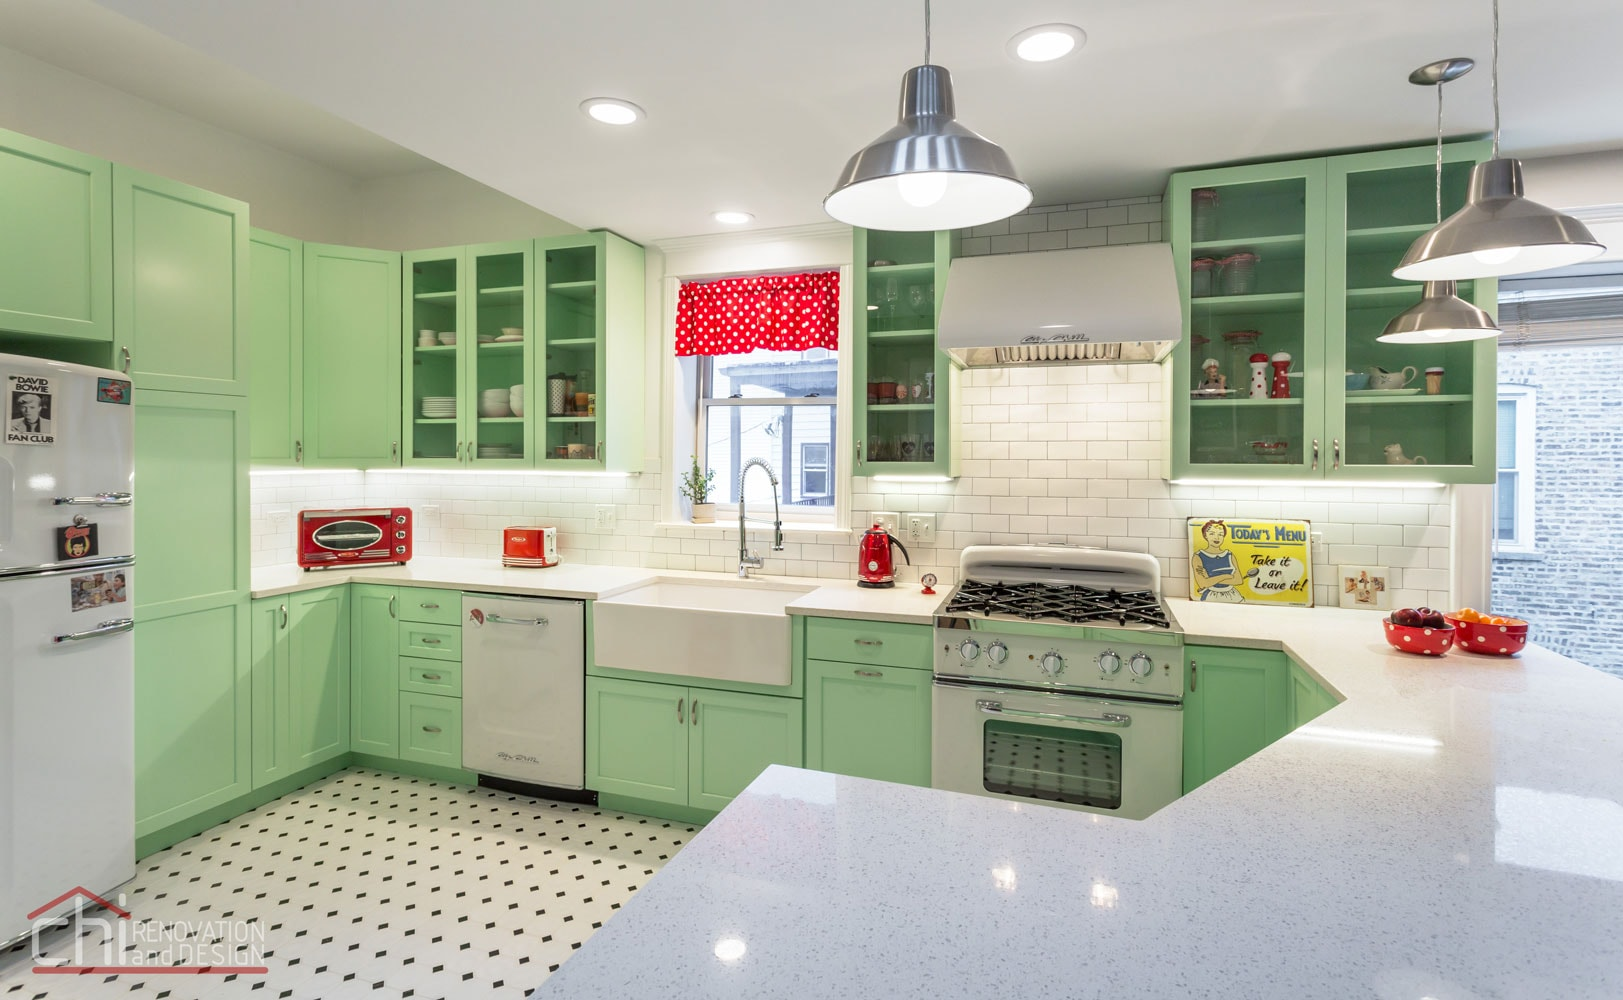 Chicago Retro Humboldt Park Kitchen Renovation